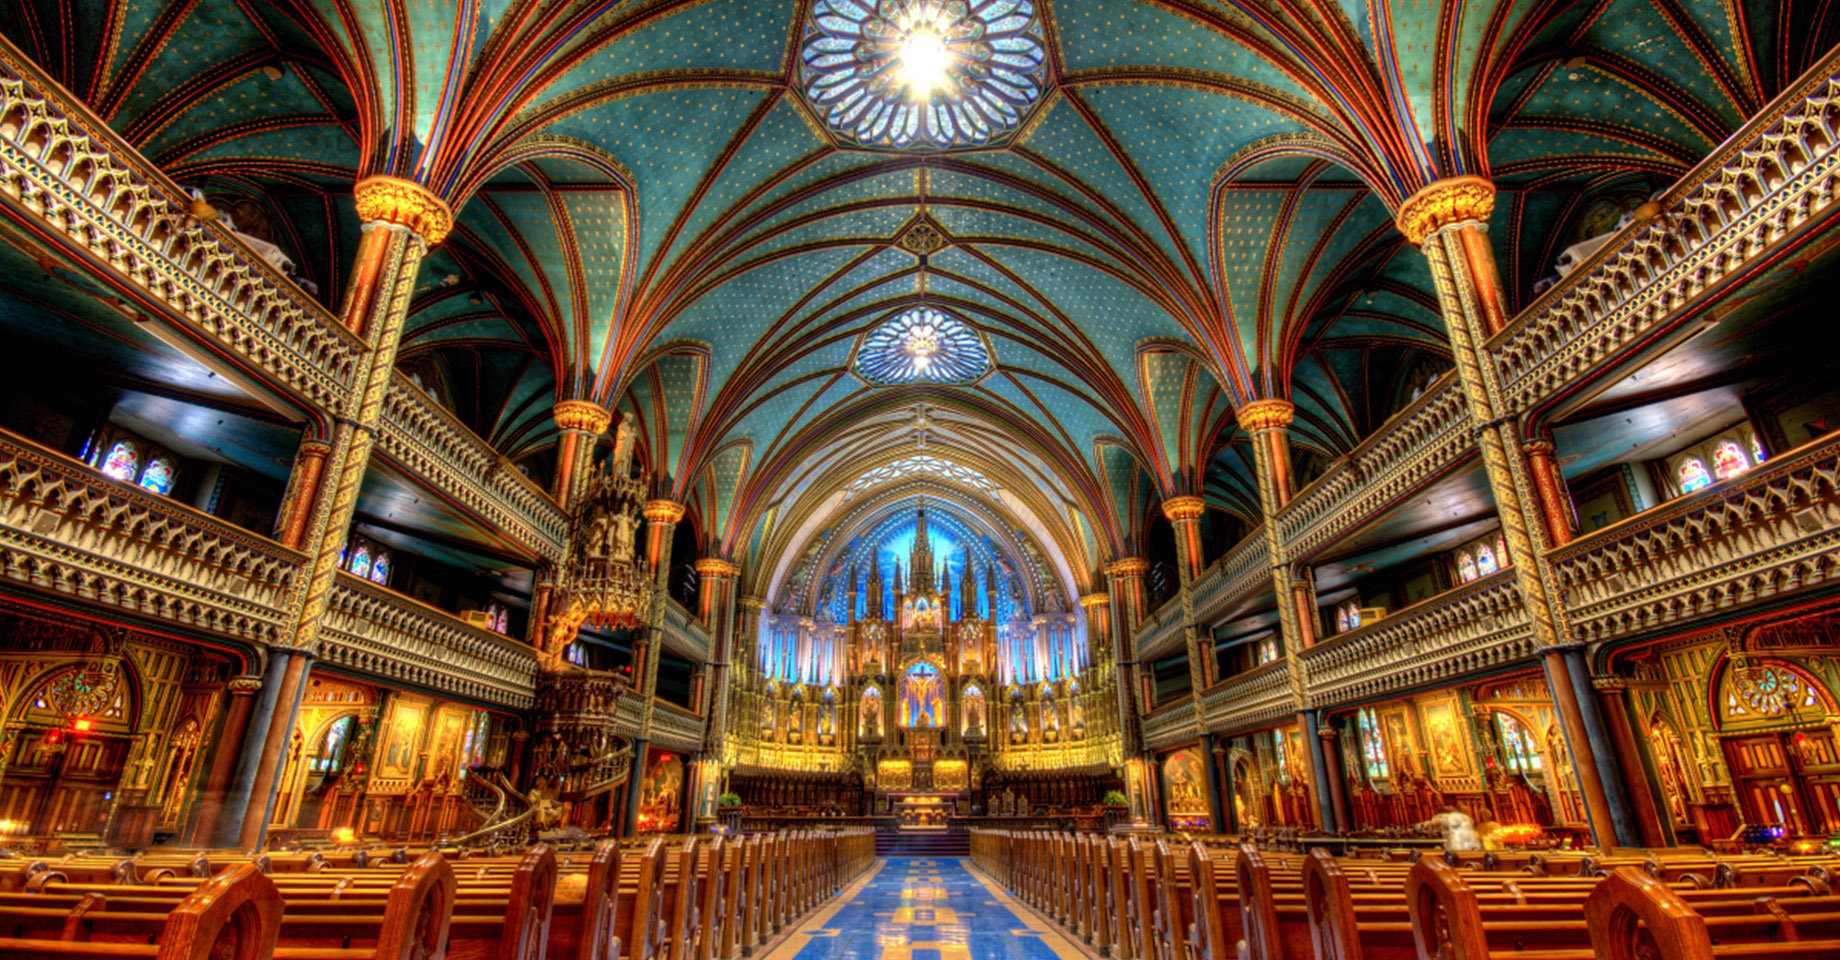 Inside of the Notre-Dame Basilica of Montreal